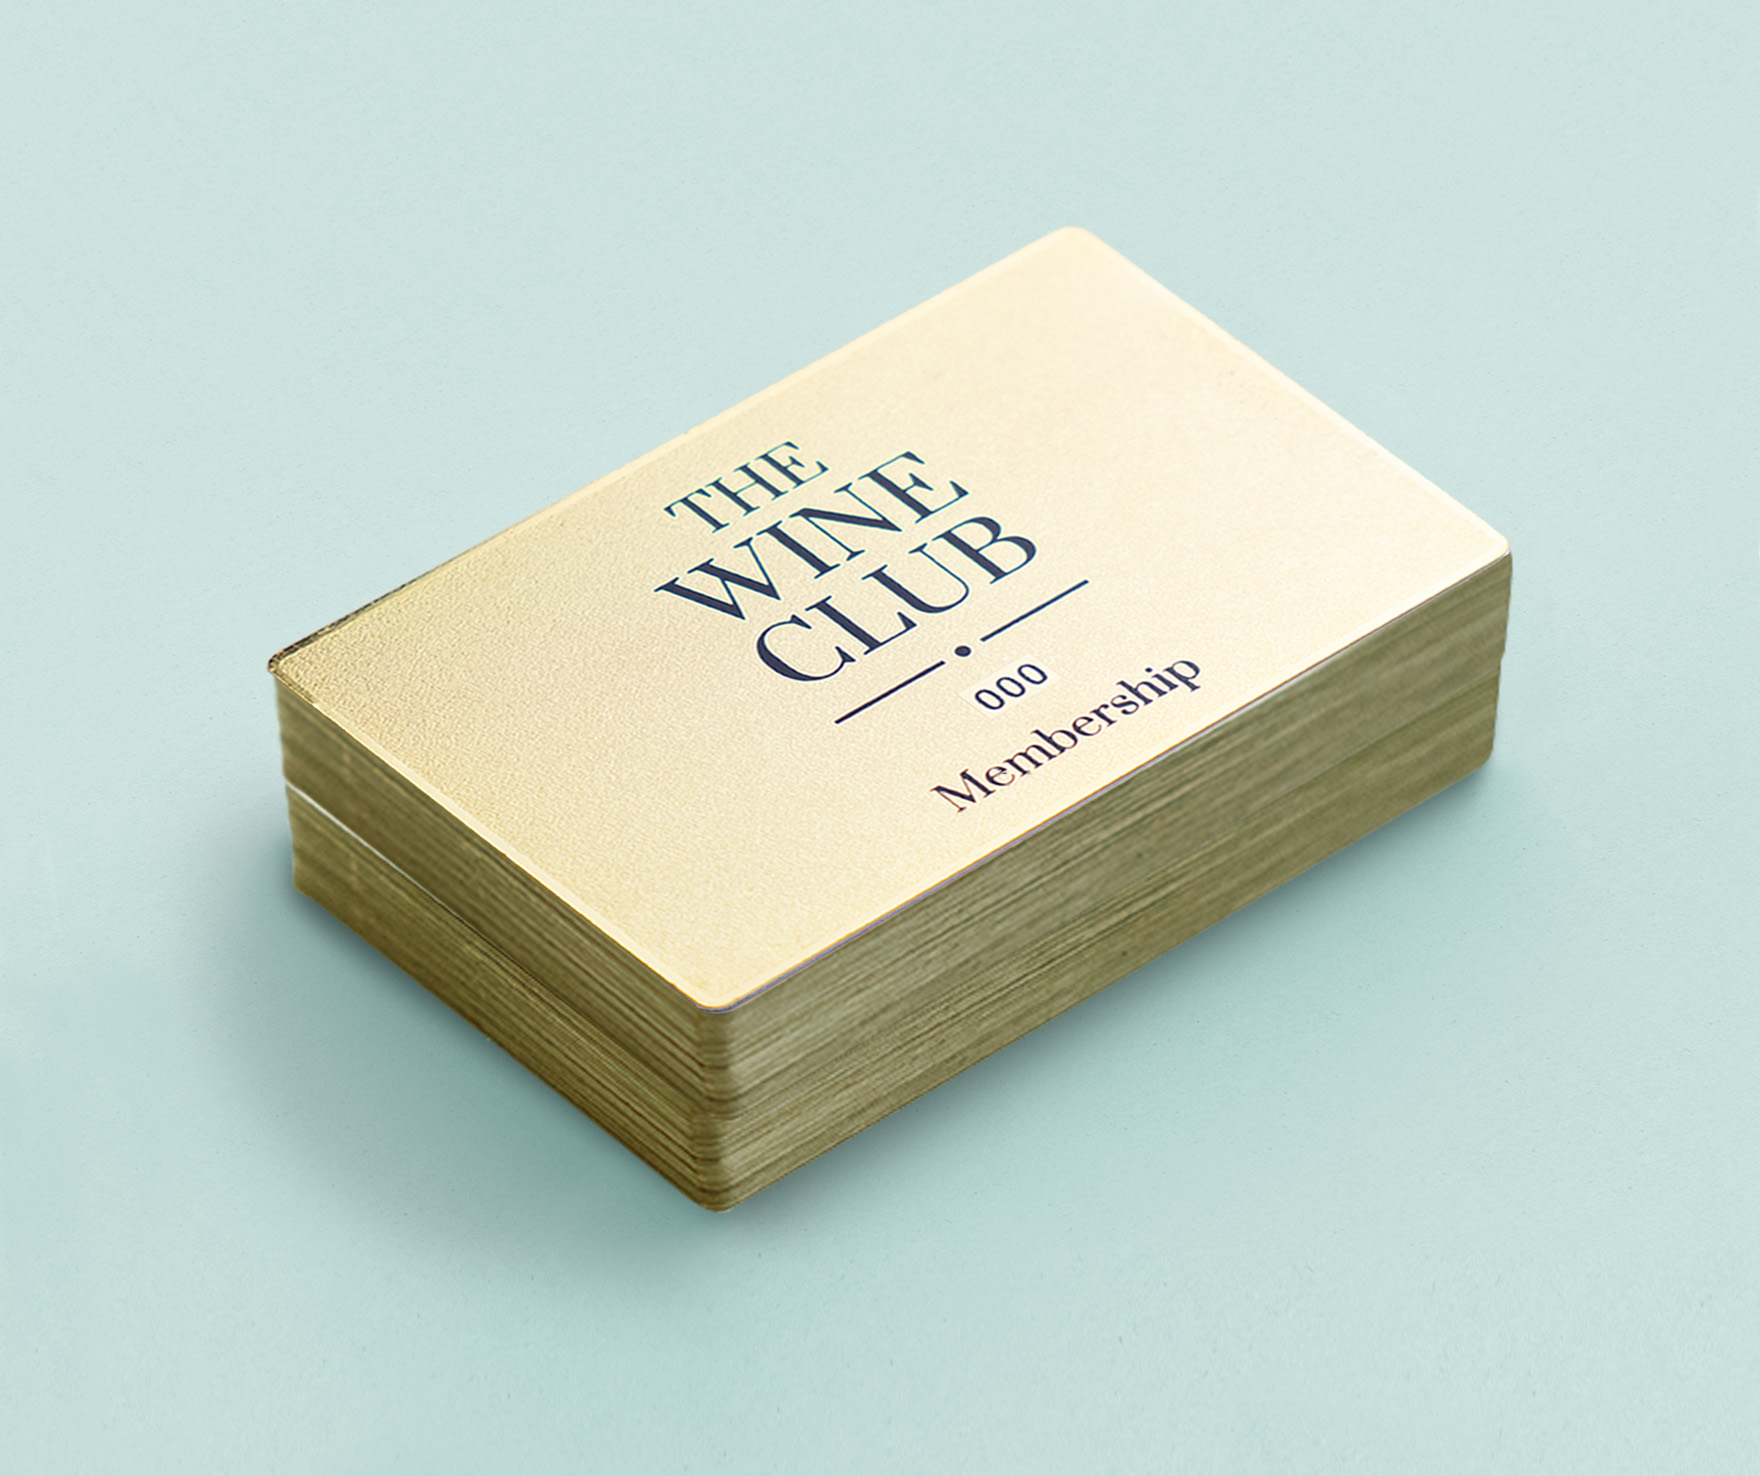 Things You Should Consider When Designing a Business Card